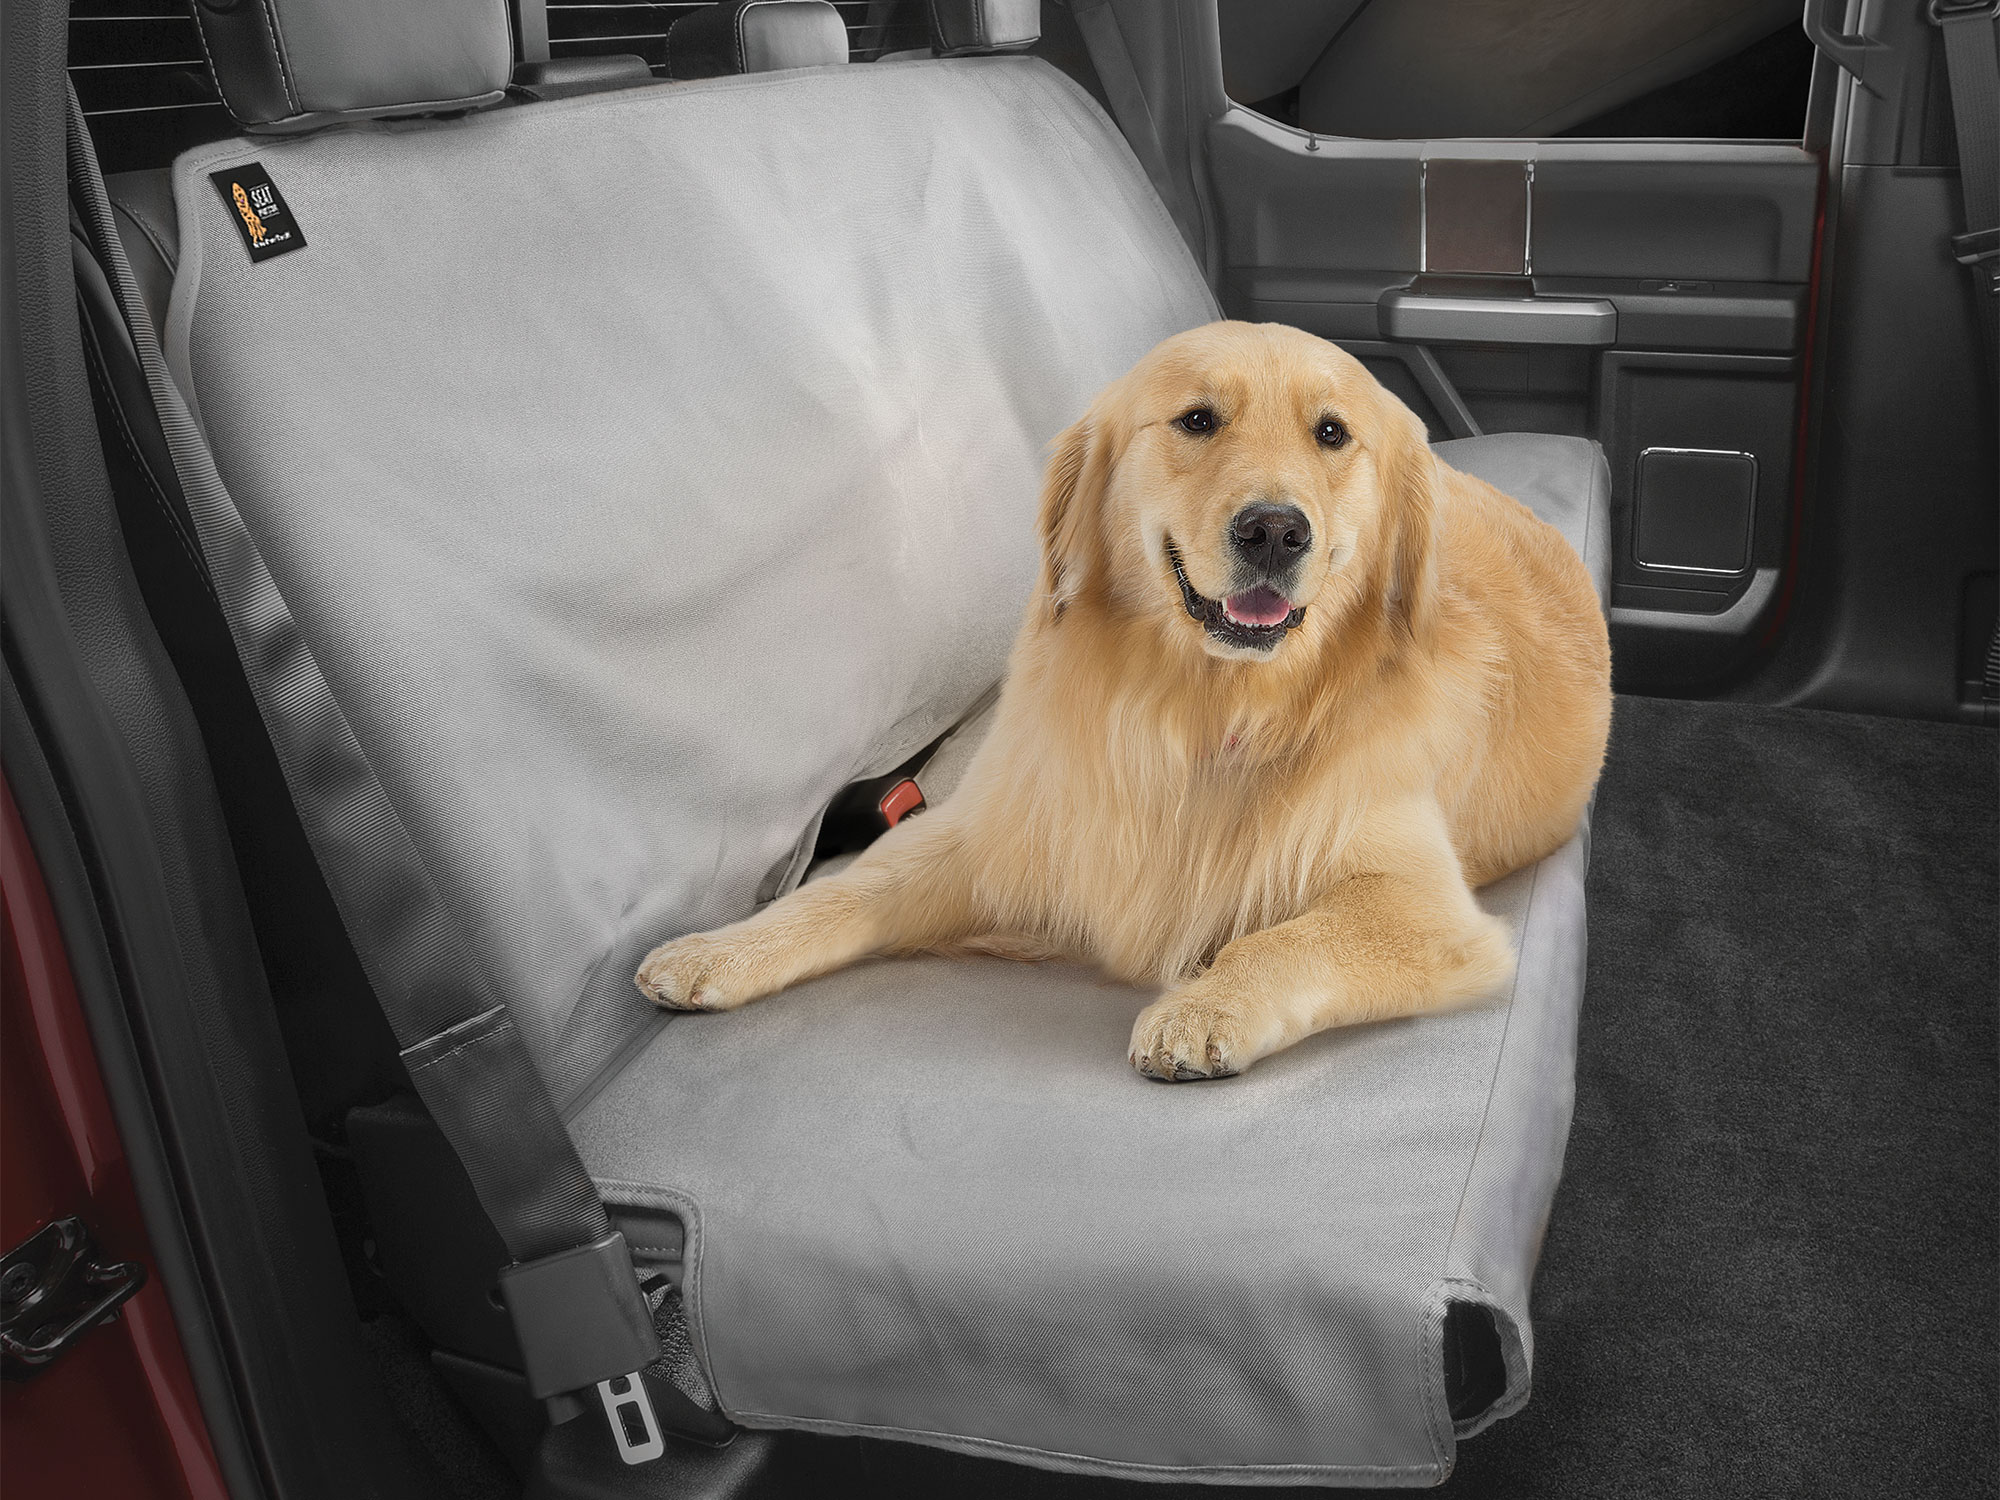 Golden Retriever on WeatherTech seat protector.